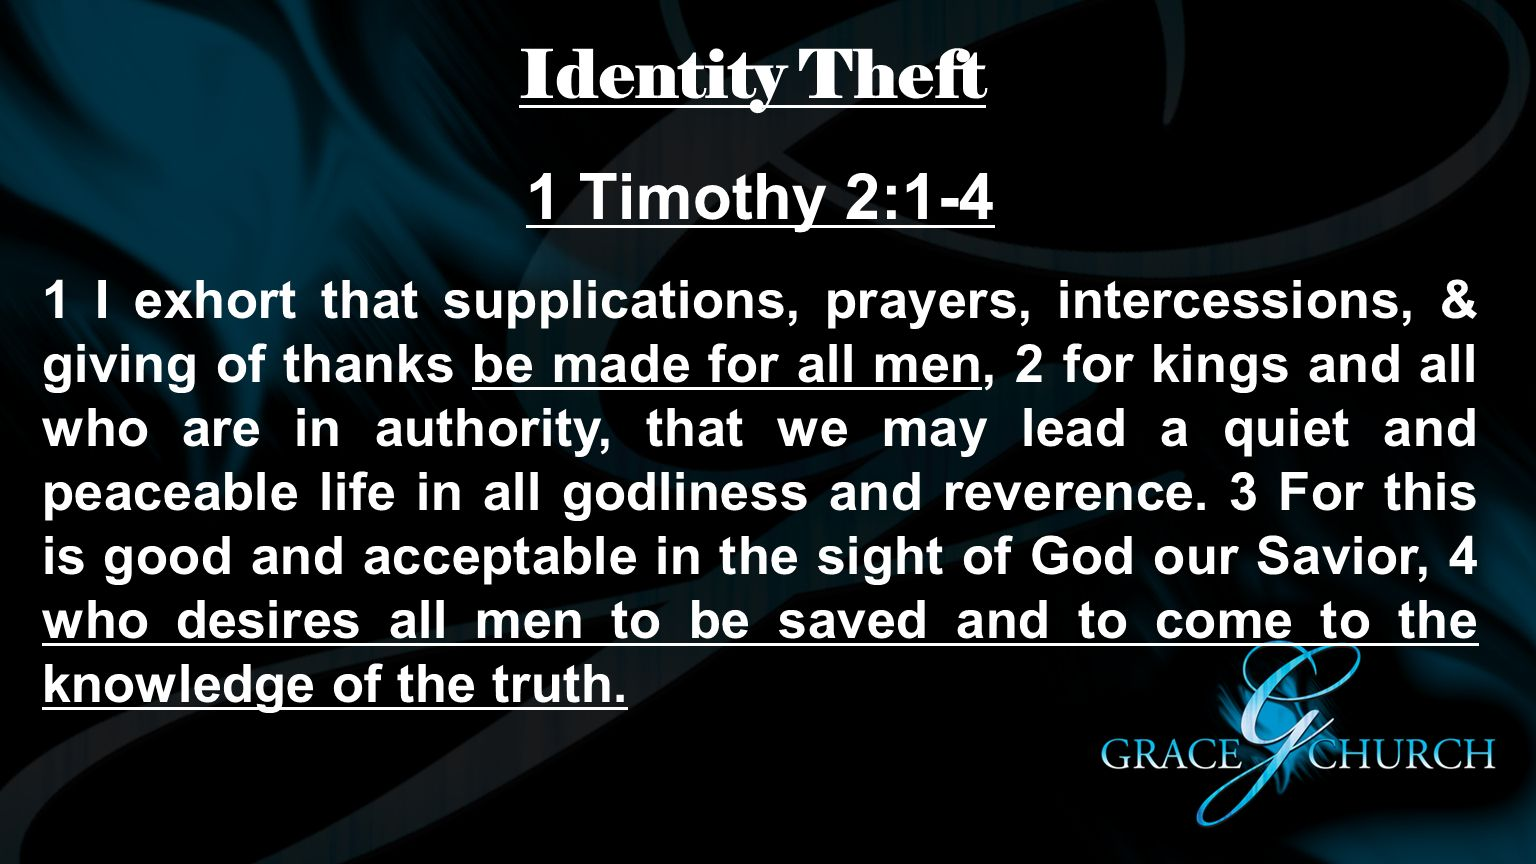 Identity Theft 1 Timothy 2:1-4 1 I exhort that supplications, prayers, intercessions, & giving of thanks be made for all men, 2 for kings and all who